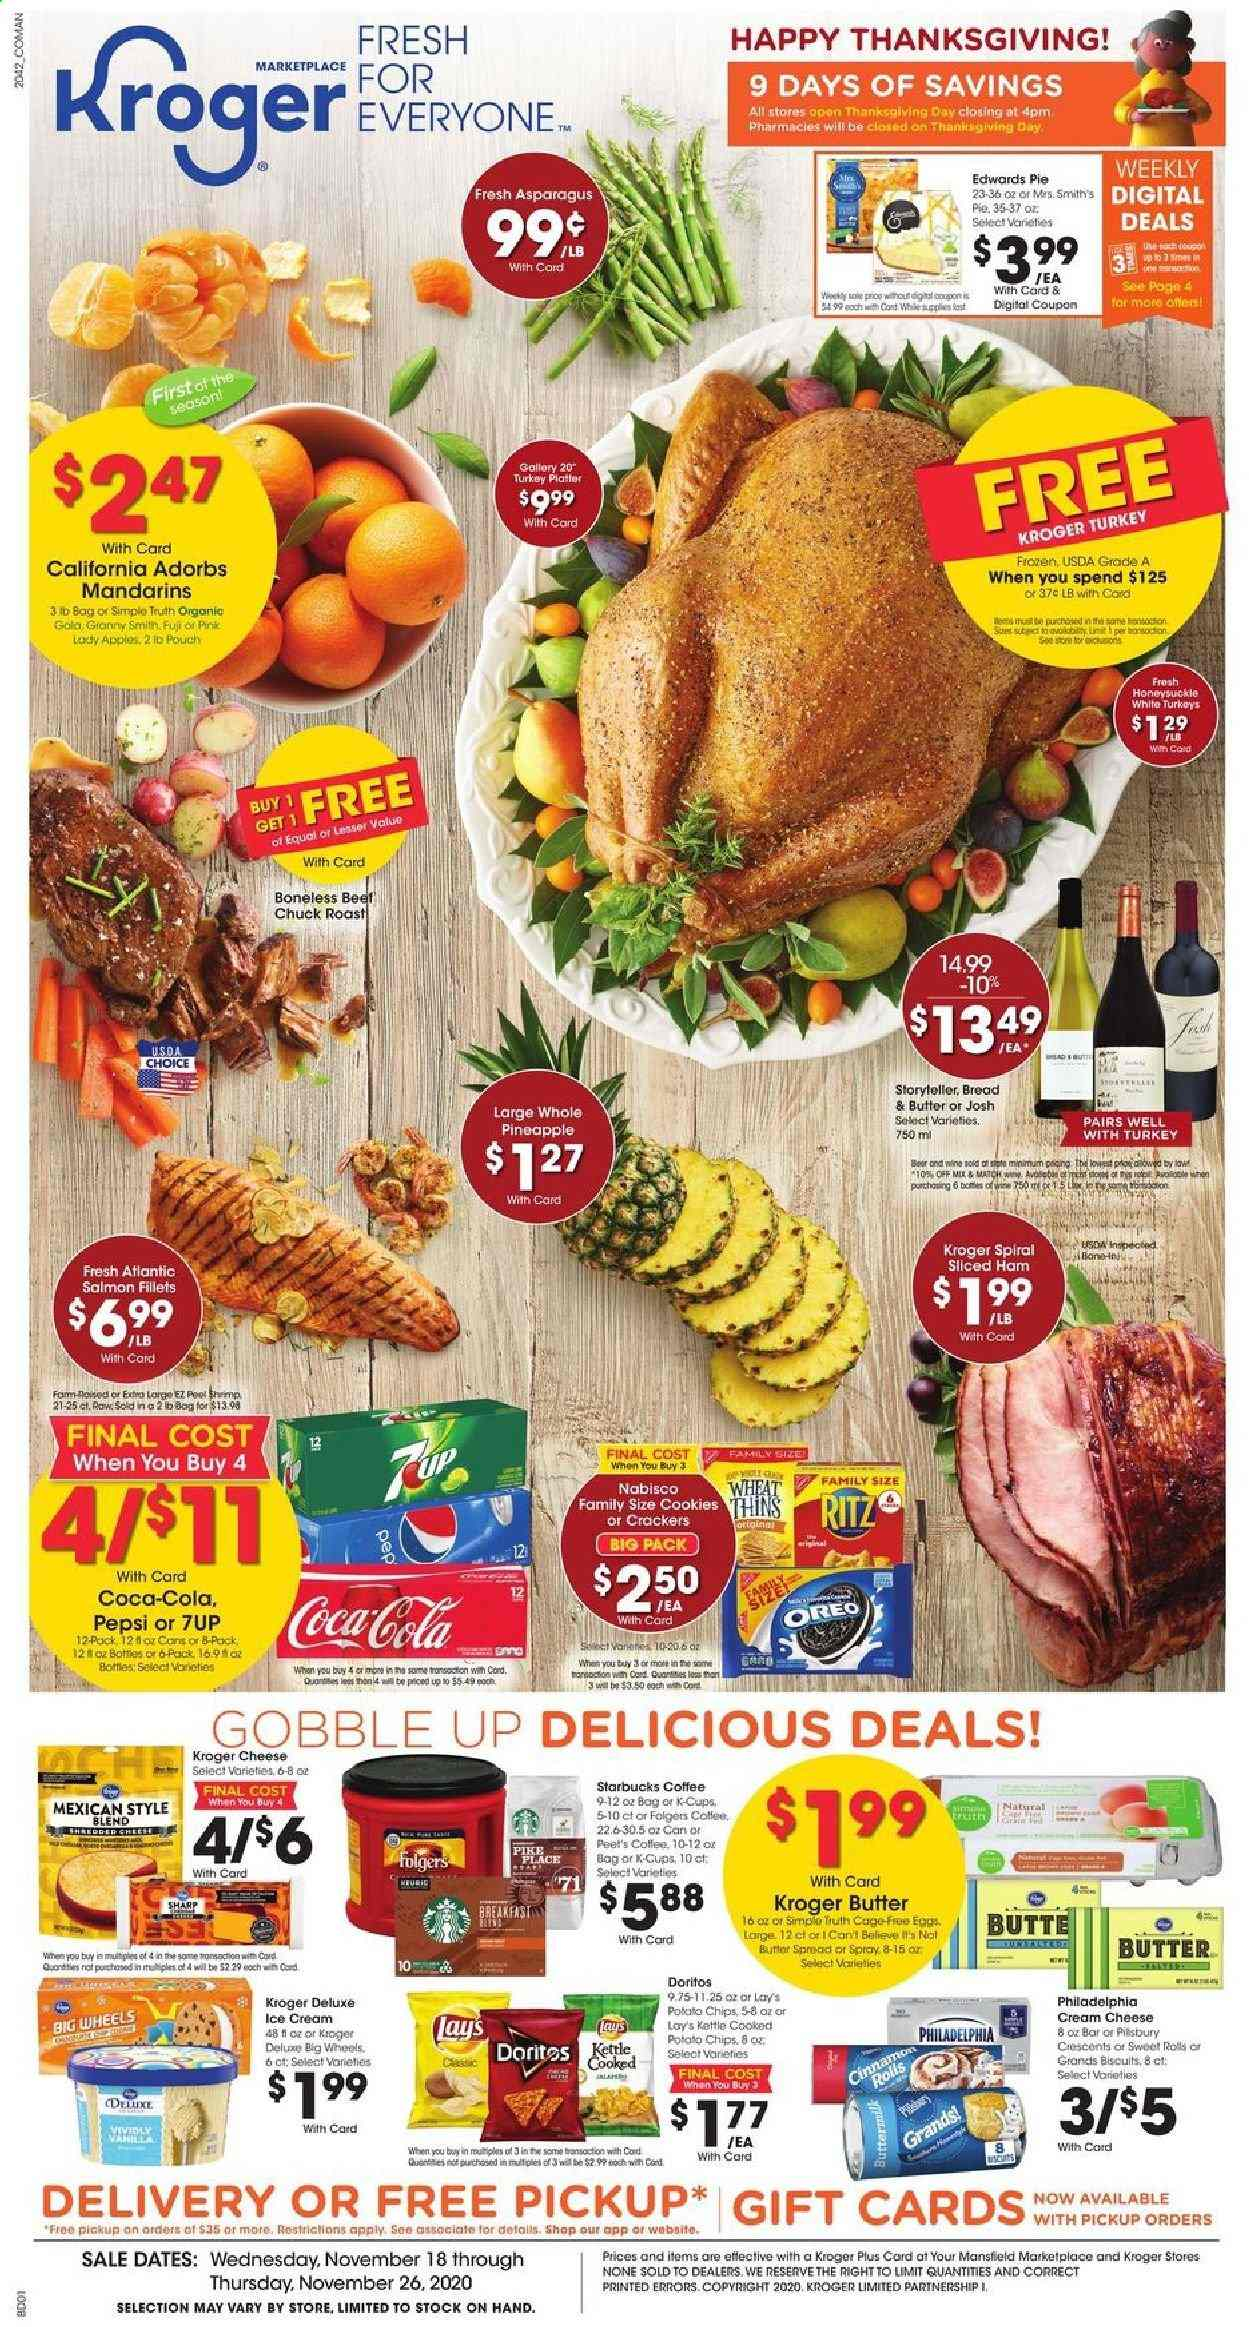 Kroger Flyer - 11.18.2020 - 11.26.2020 - Sales products - apples, asparagus, beef meat, beer, biscuits, bread, butter, cinnamon rolls, Coca-Cola, coffee, cream cheese, Doritos, eggs, frozen, Gola, salmon, Sharp, starbucks, turkey, ham, ice cream, philadelphia, pike, pineapple, potato chips, Pepsi, Oreo, chips, cheese, pie, Lay's, wine, platter, Folgers, Apple, shrimps, kettle. Page 1.